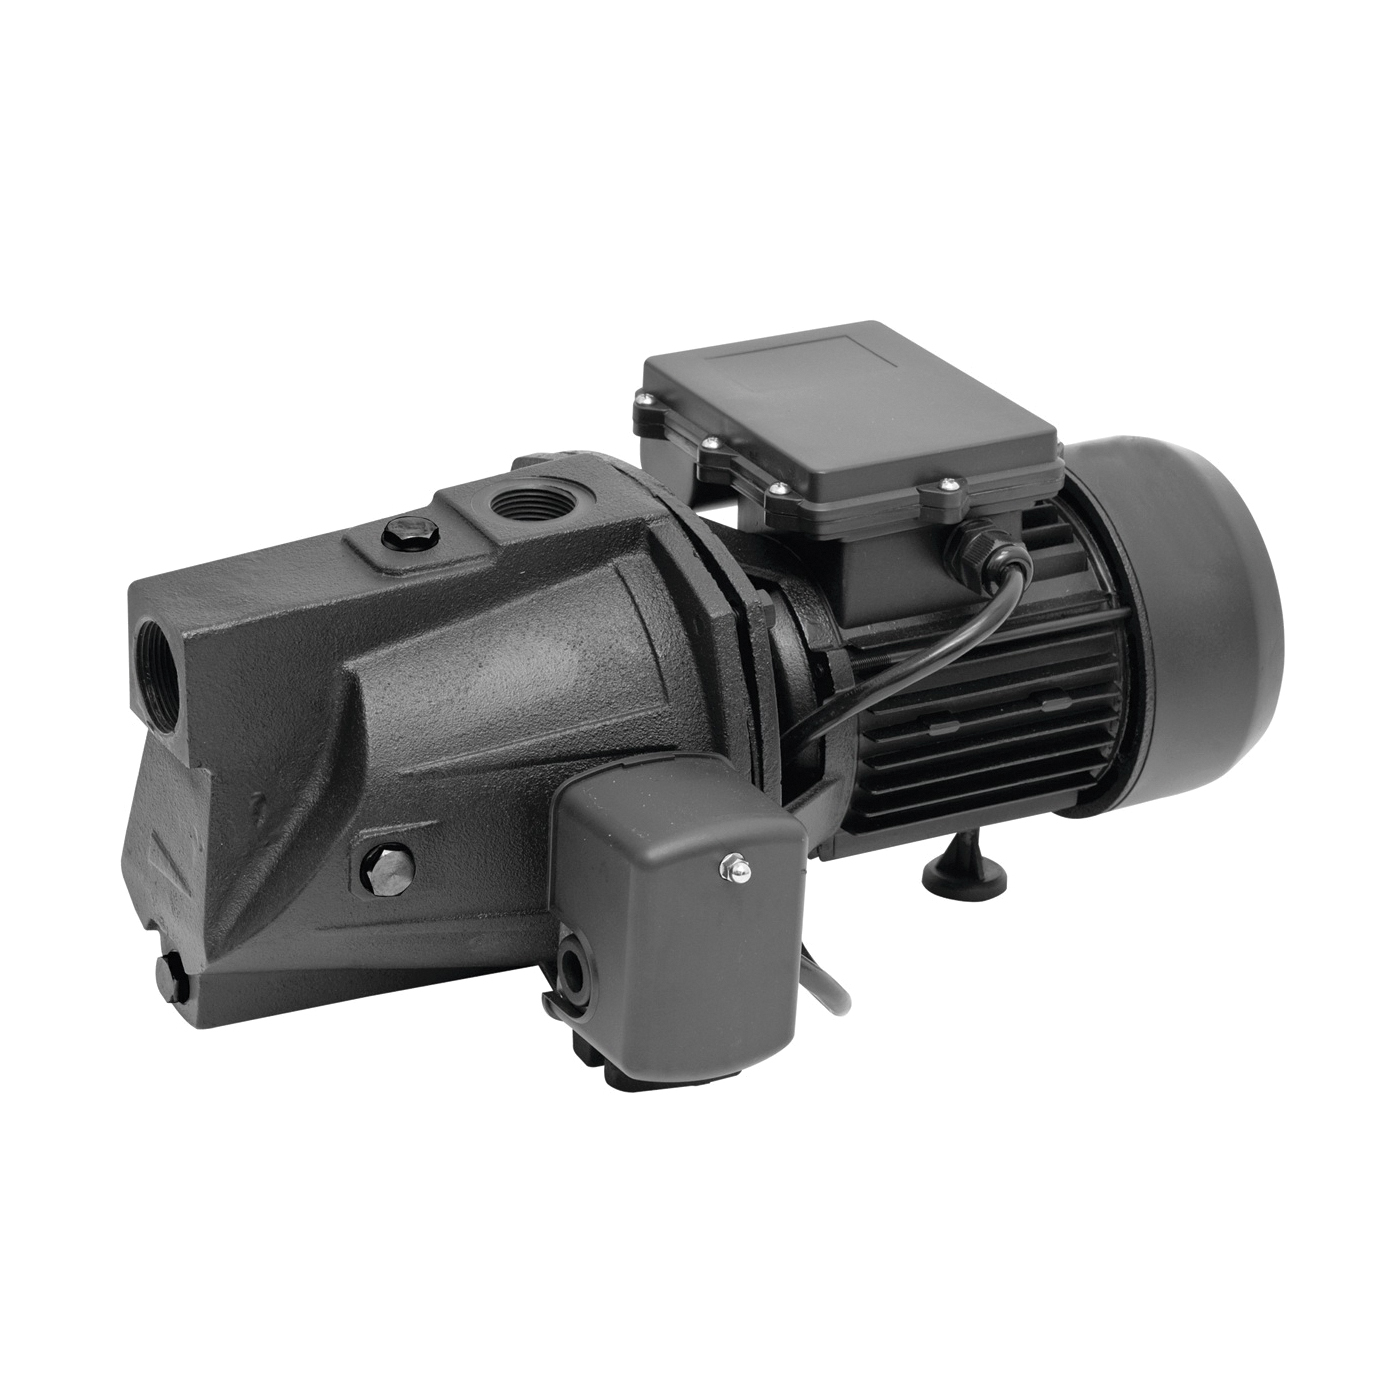 Picture of SUPERIOR PUMP 94505 Jet Pump, 6.4/3.2 A, 115/230 V, 0.5 hp, 1-1/4 in Suction, 1 in Discharge Connection, 12.5 gpm